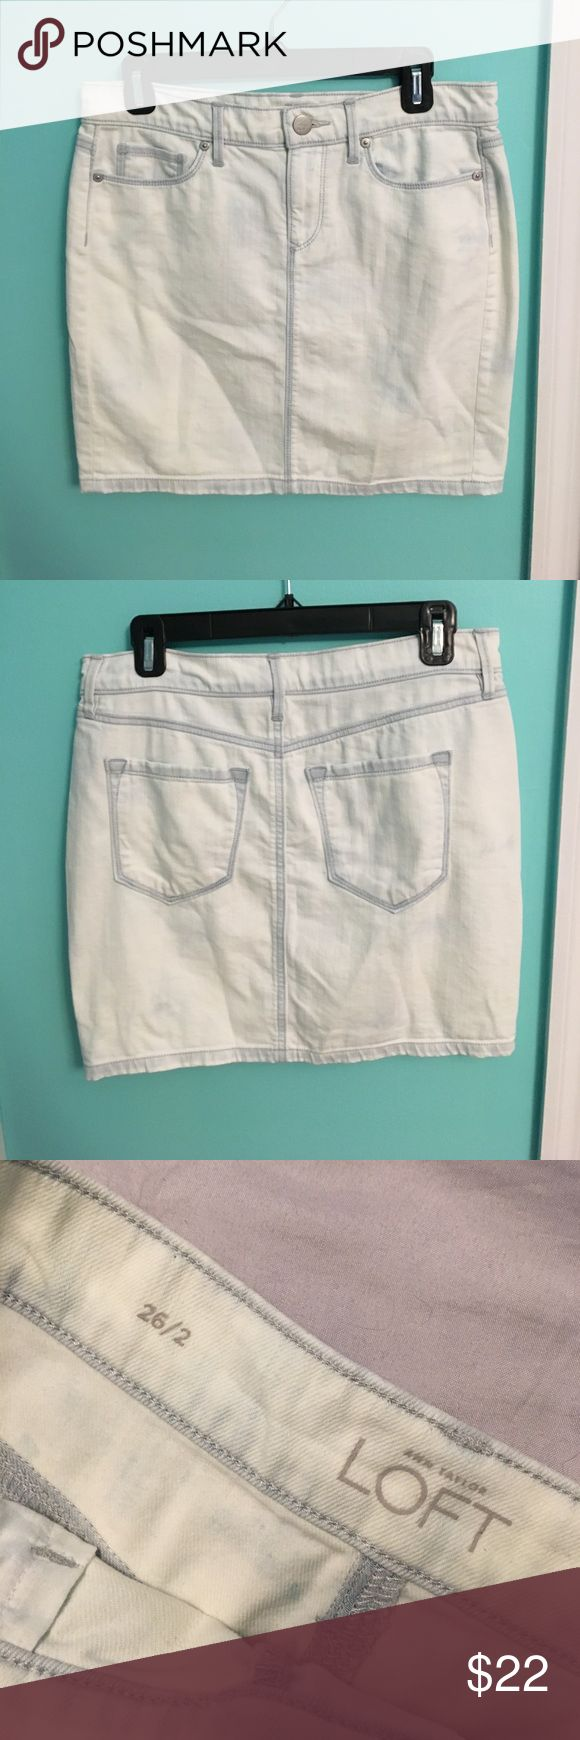 """LOFT Light Wash Denim Skirt Adorable LOFT skirt. Meant to sit on your hips. Perfect condition. Never worn. According to LOFT clothes, a size 2 is a 26"""" waist. LOFT Skirts Mini"""